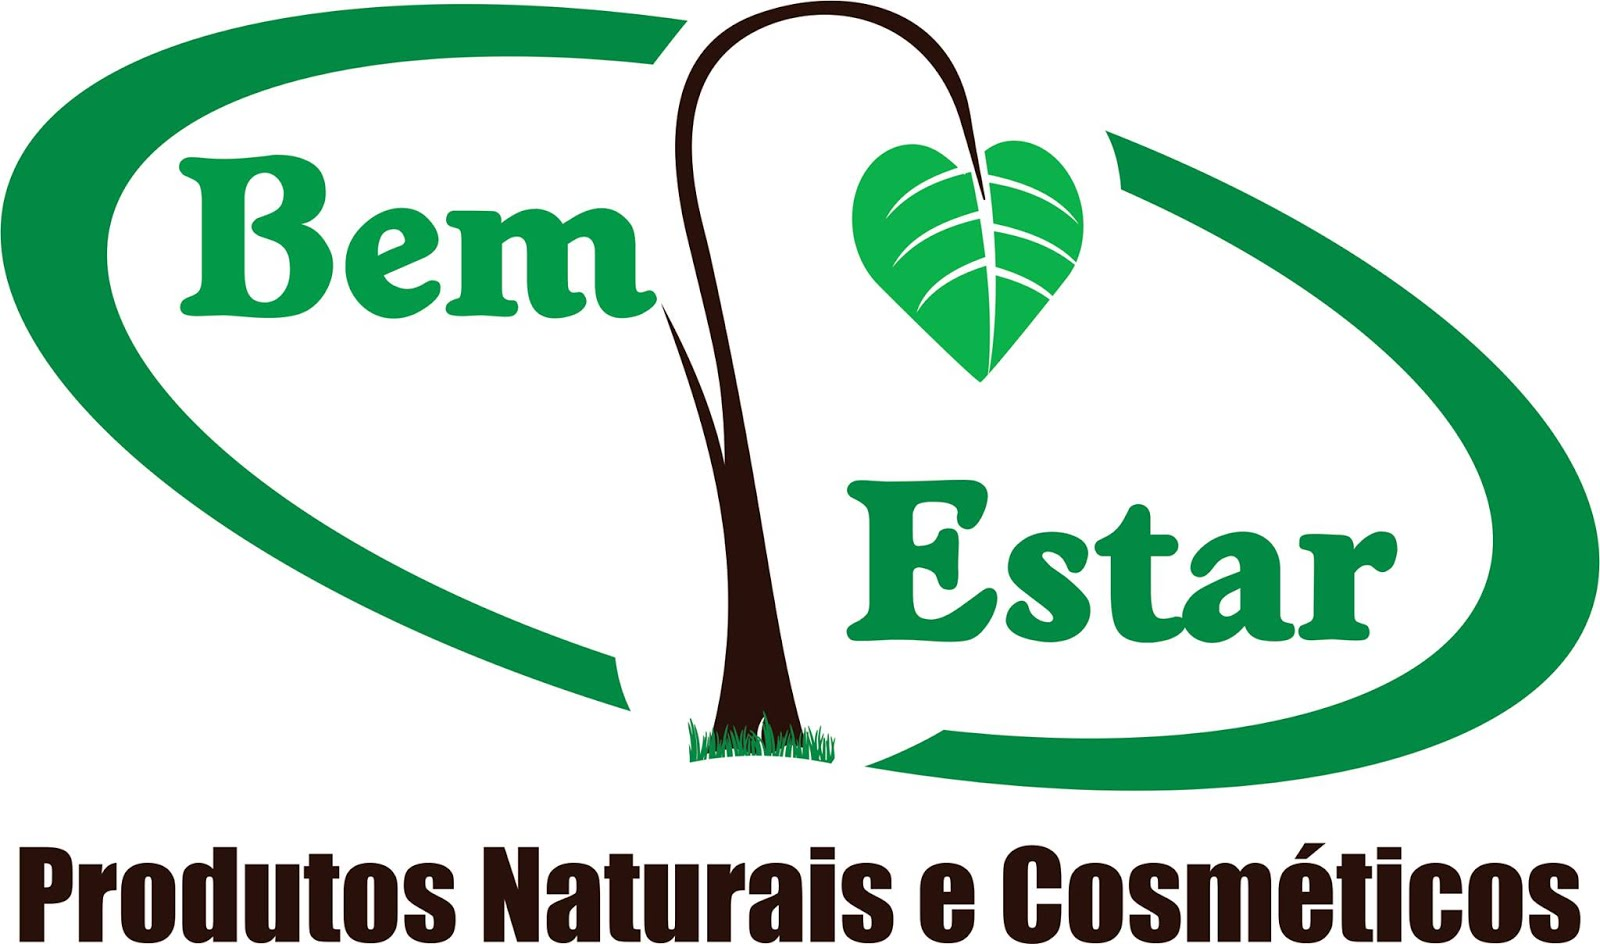 Produtos Naturais e Cosméticos